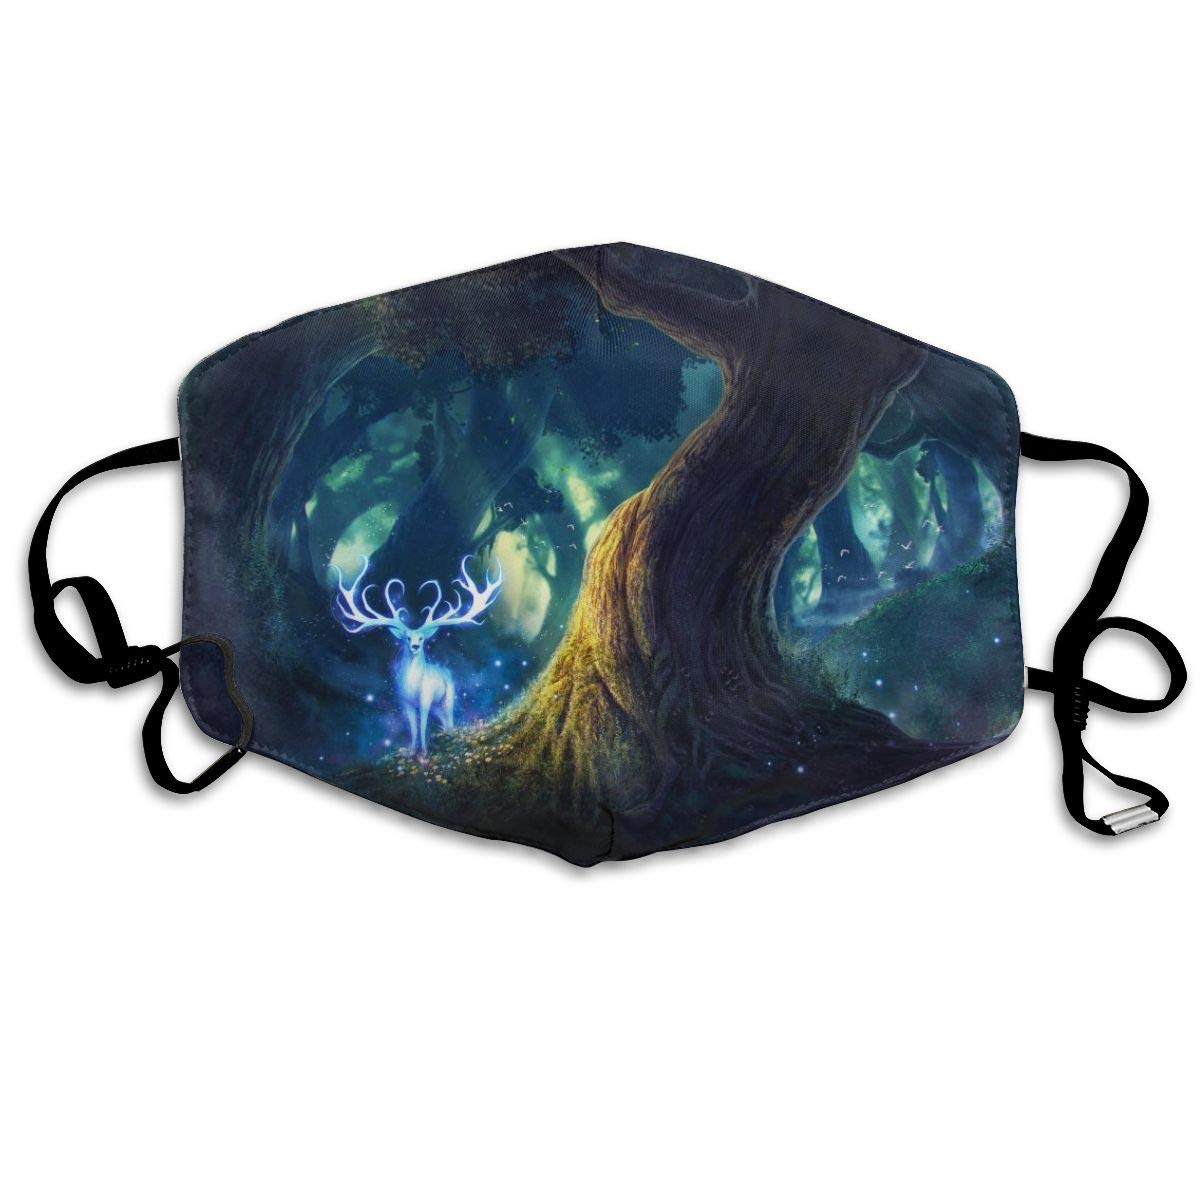 Mouth Mask for Daily Dress Up, Deer in The Forest Anti-dust Mouth-Muffle, Washable Reusable Holiday Half Face Masks for Mens and